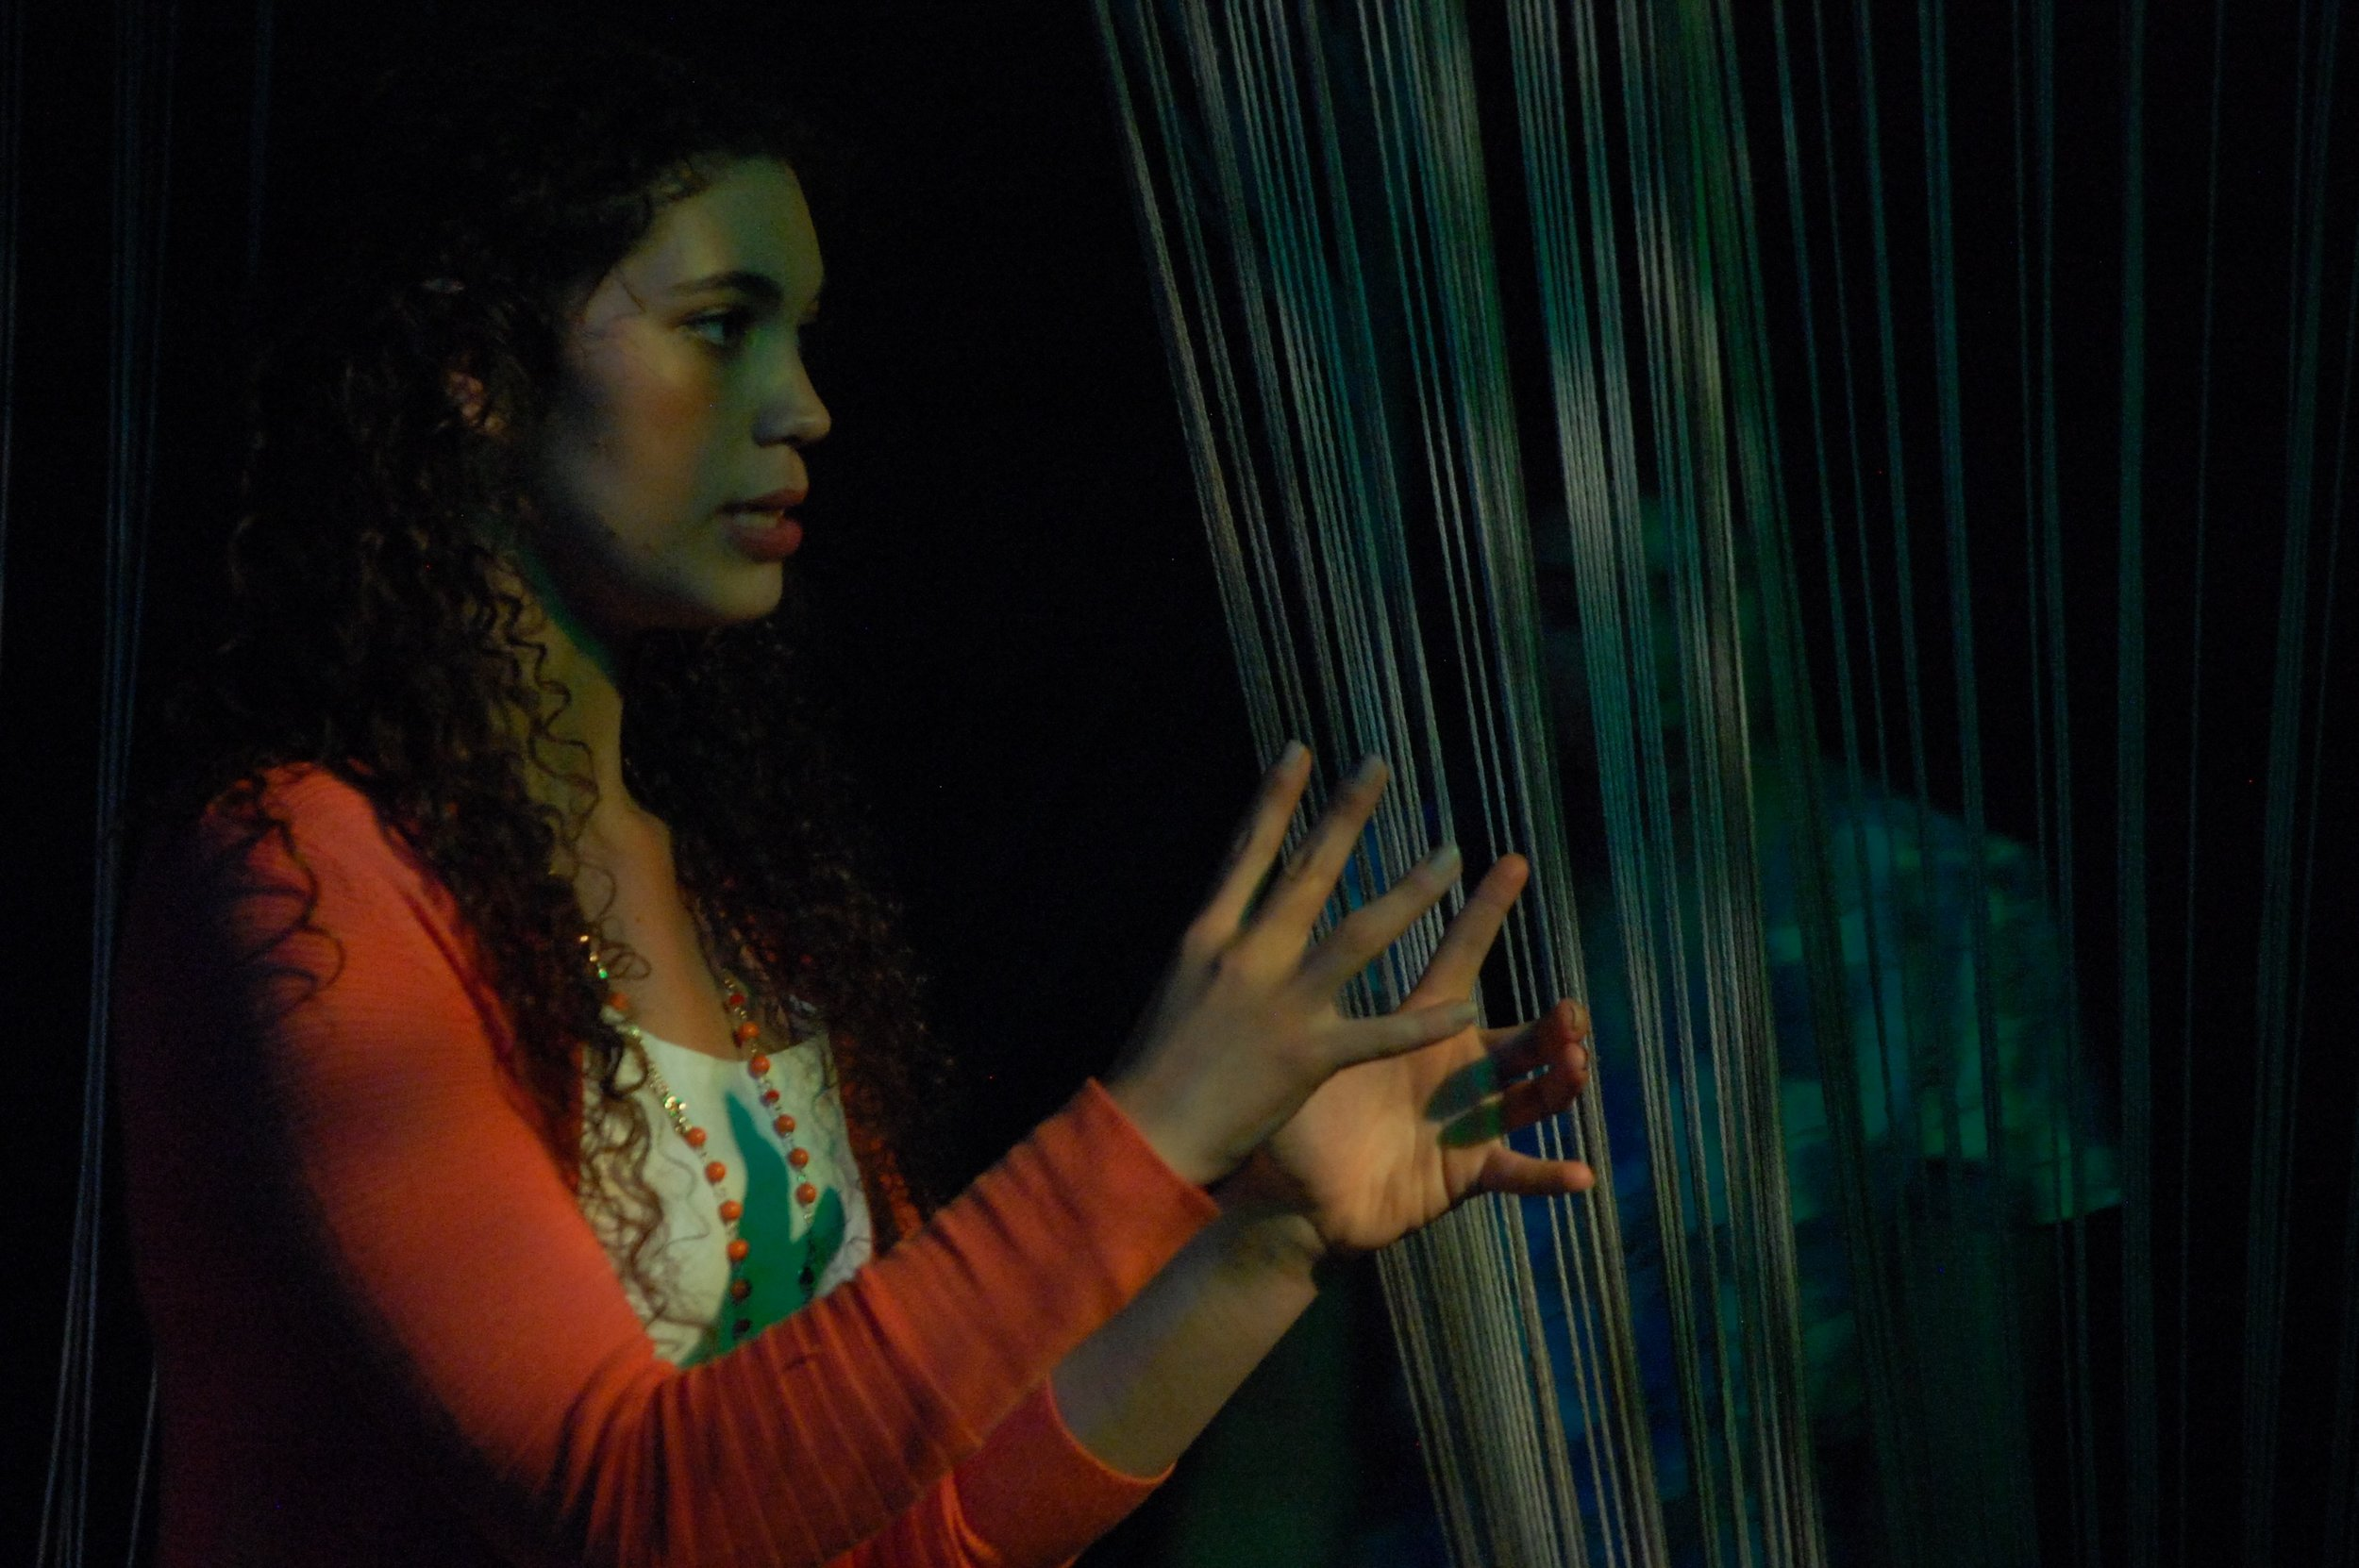 Eurydice searches for the truth